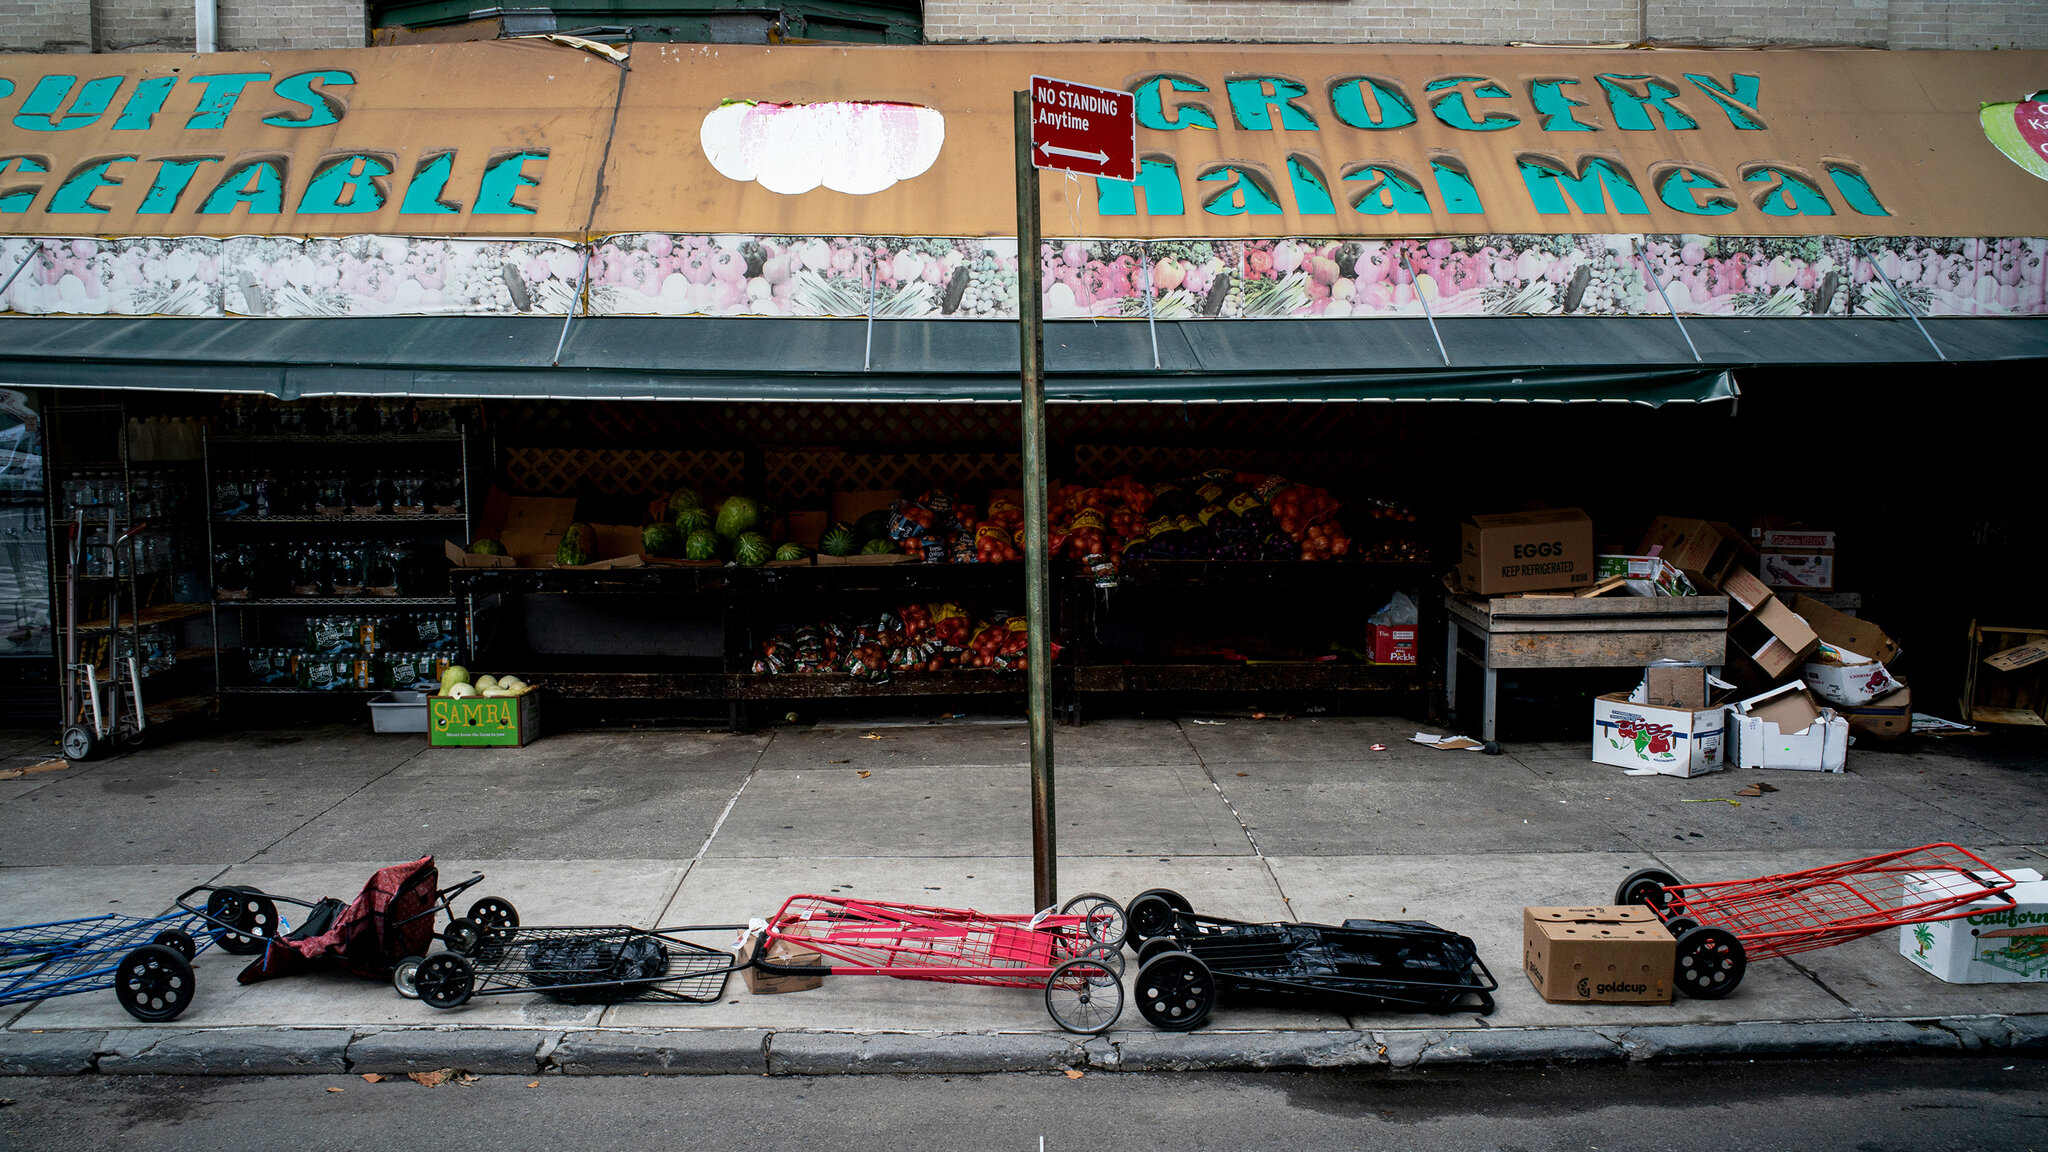 At Masbia, sometimes people save their spot in the line with their carts the picture was taken by the New York Times photographer Todd Heisler